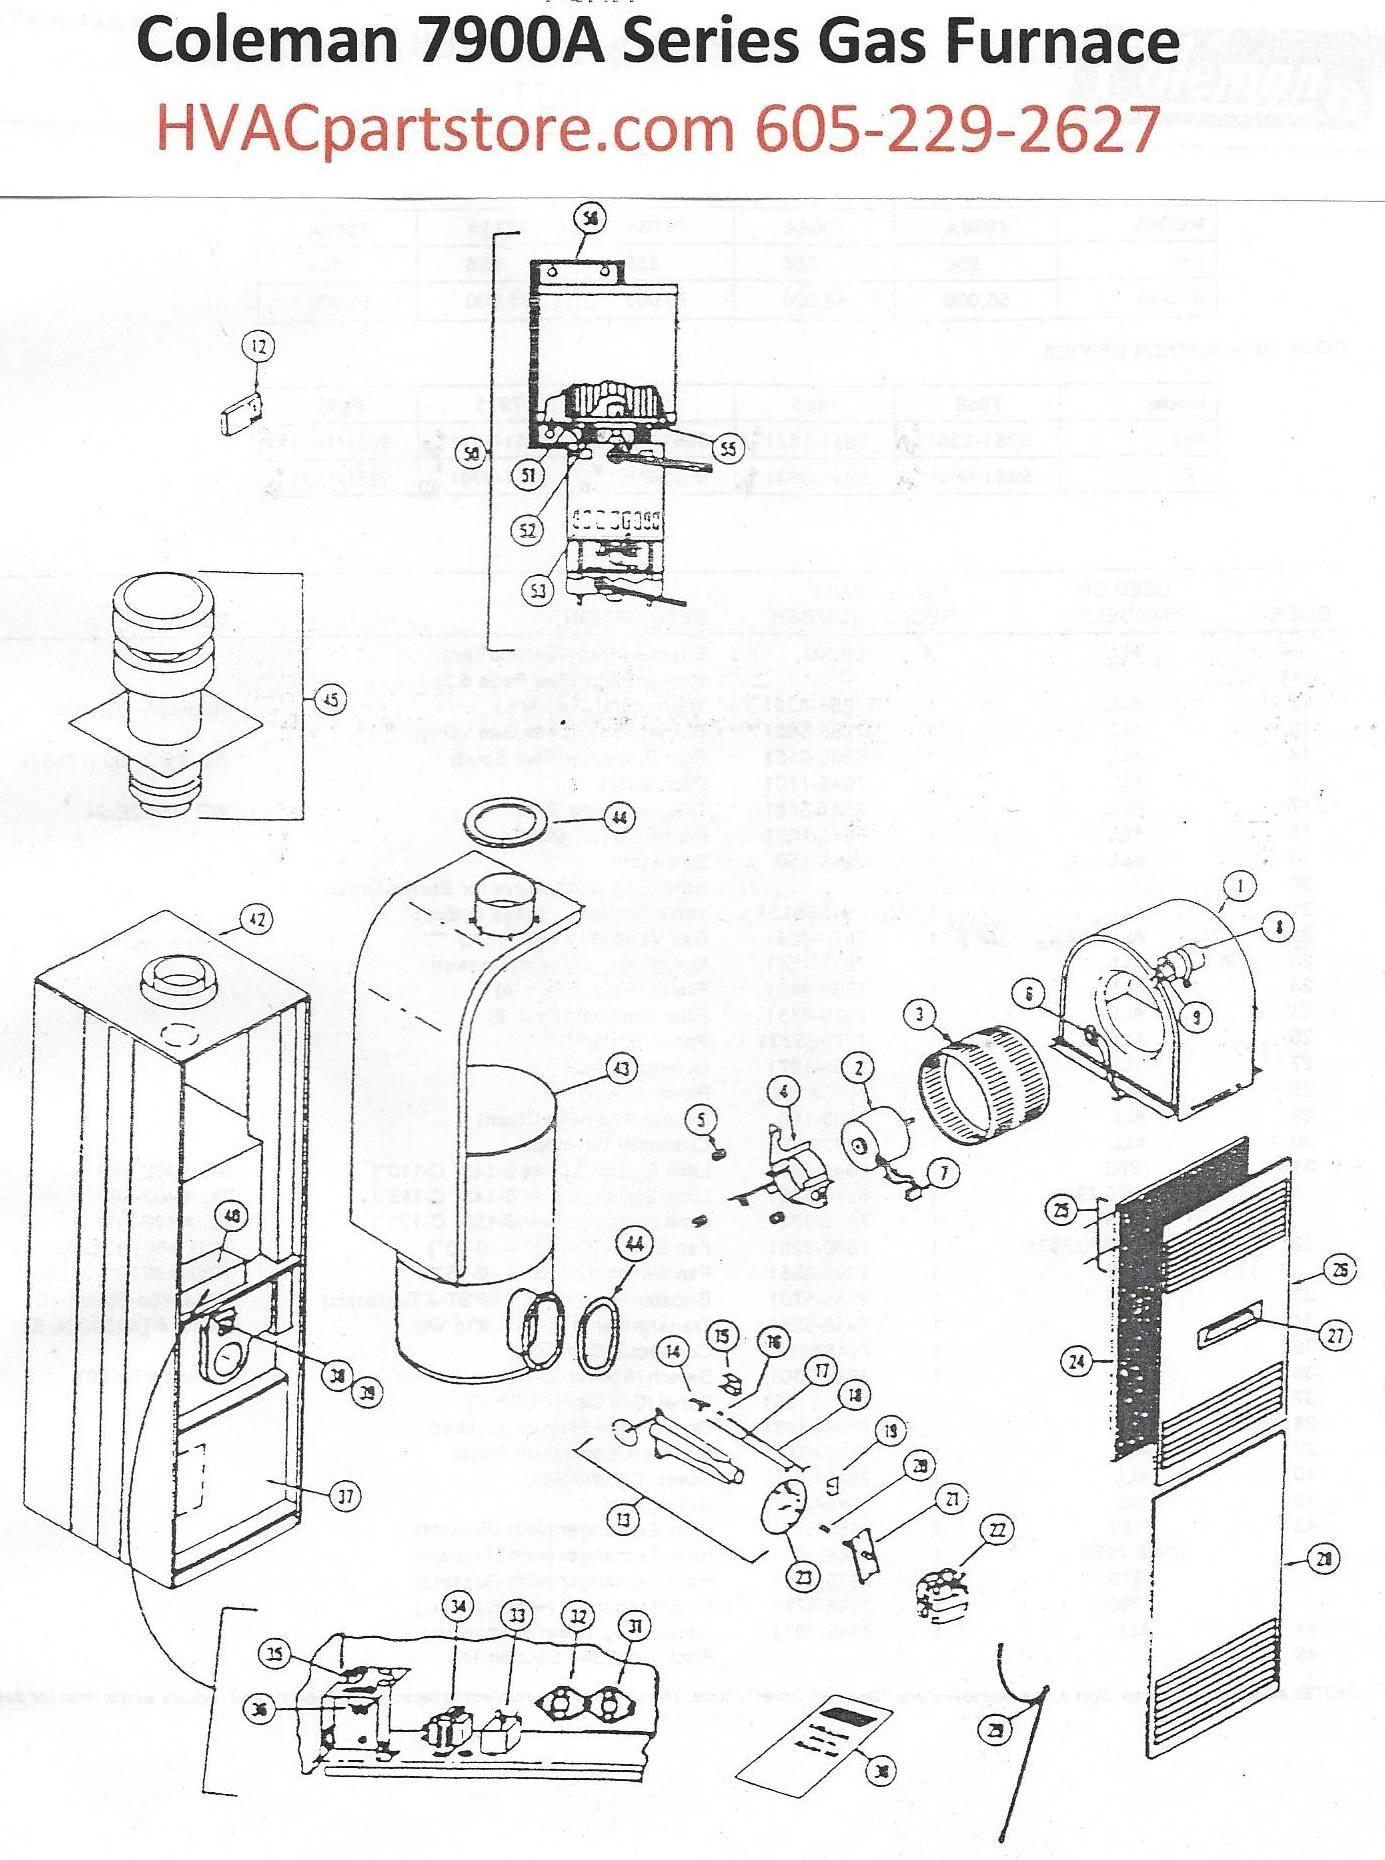 Dgat090bdd Coleman Gas Furnace Parts further Rheem Centurion 2 Furnace Wiring Diagram likewise 7975a856 Coleman Gas Furnace Parts also Coleman Cable Wiring Diagram moreover How To Wire A Vintage C er. on mobile home intertherm furnace parts diagram